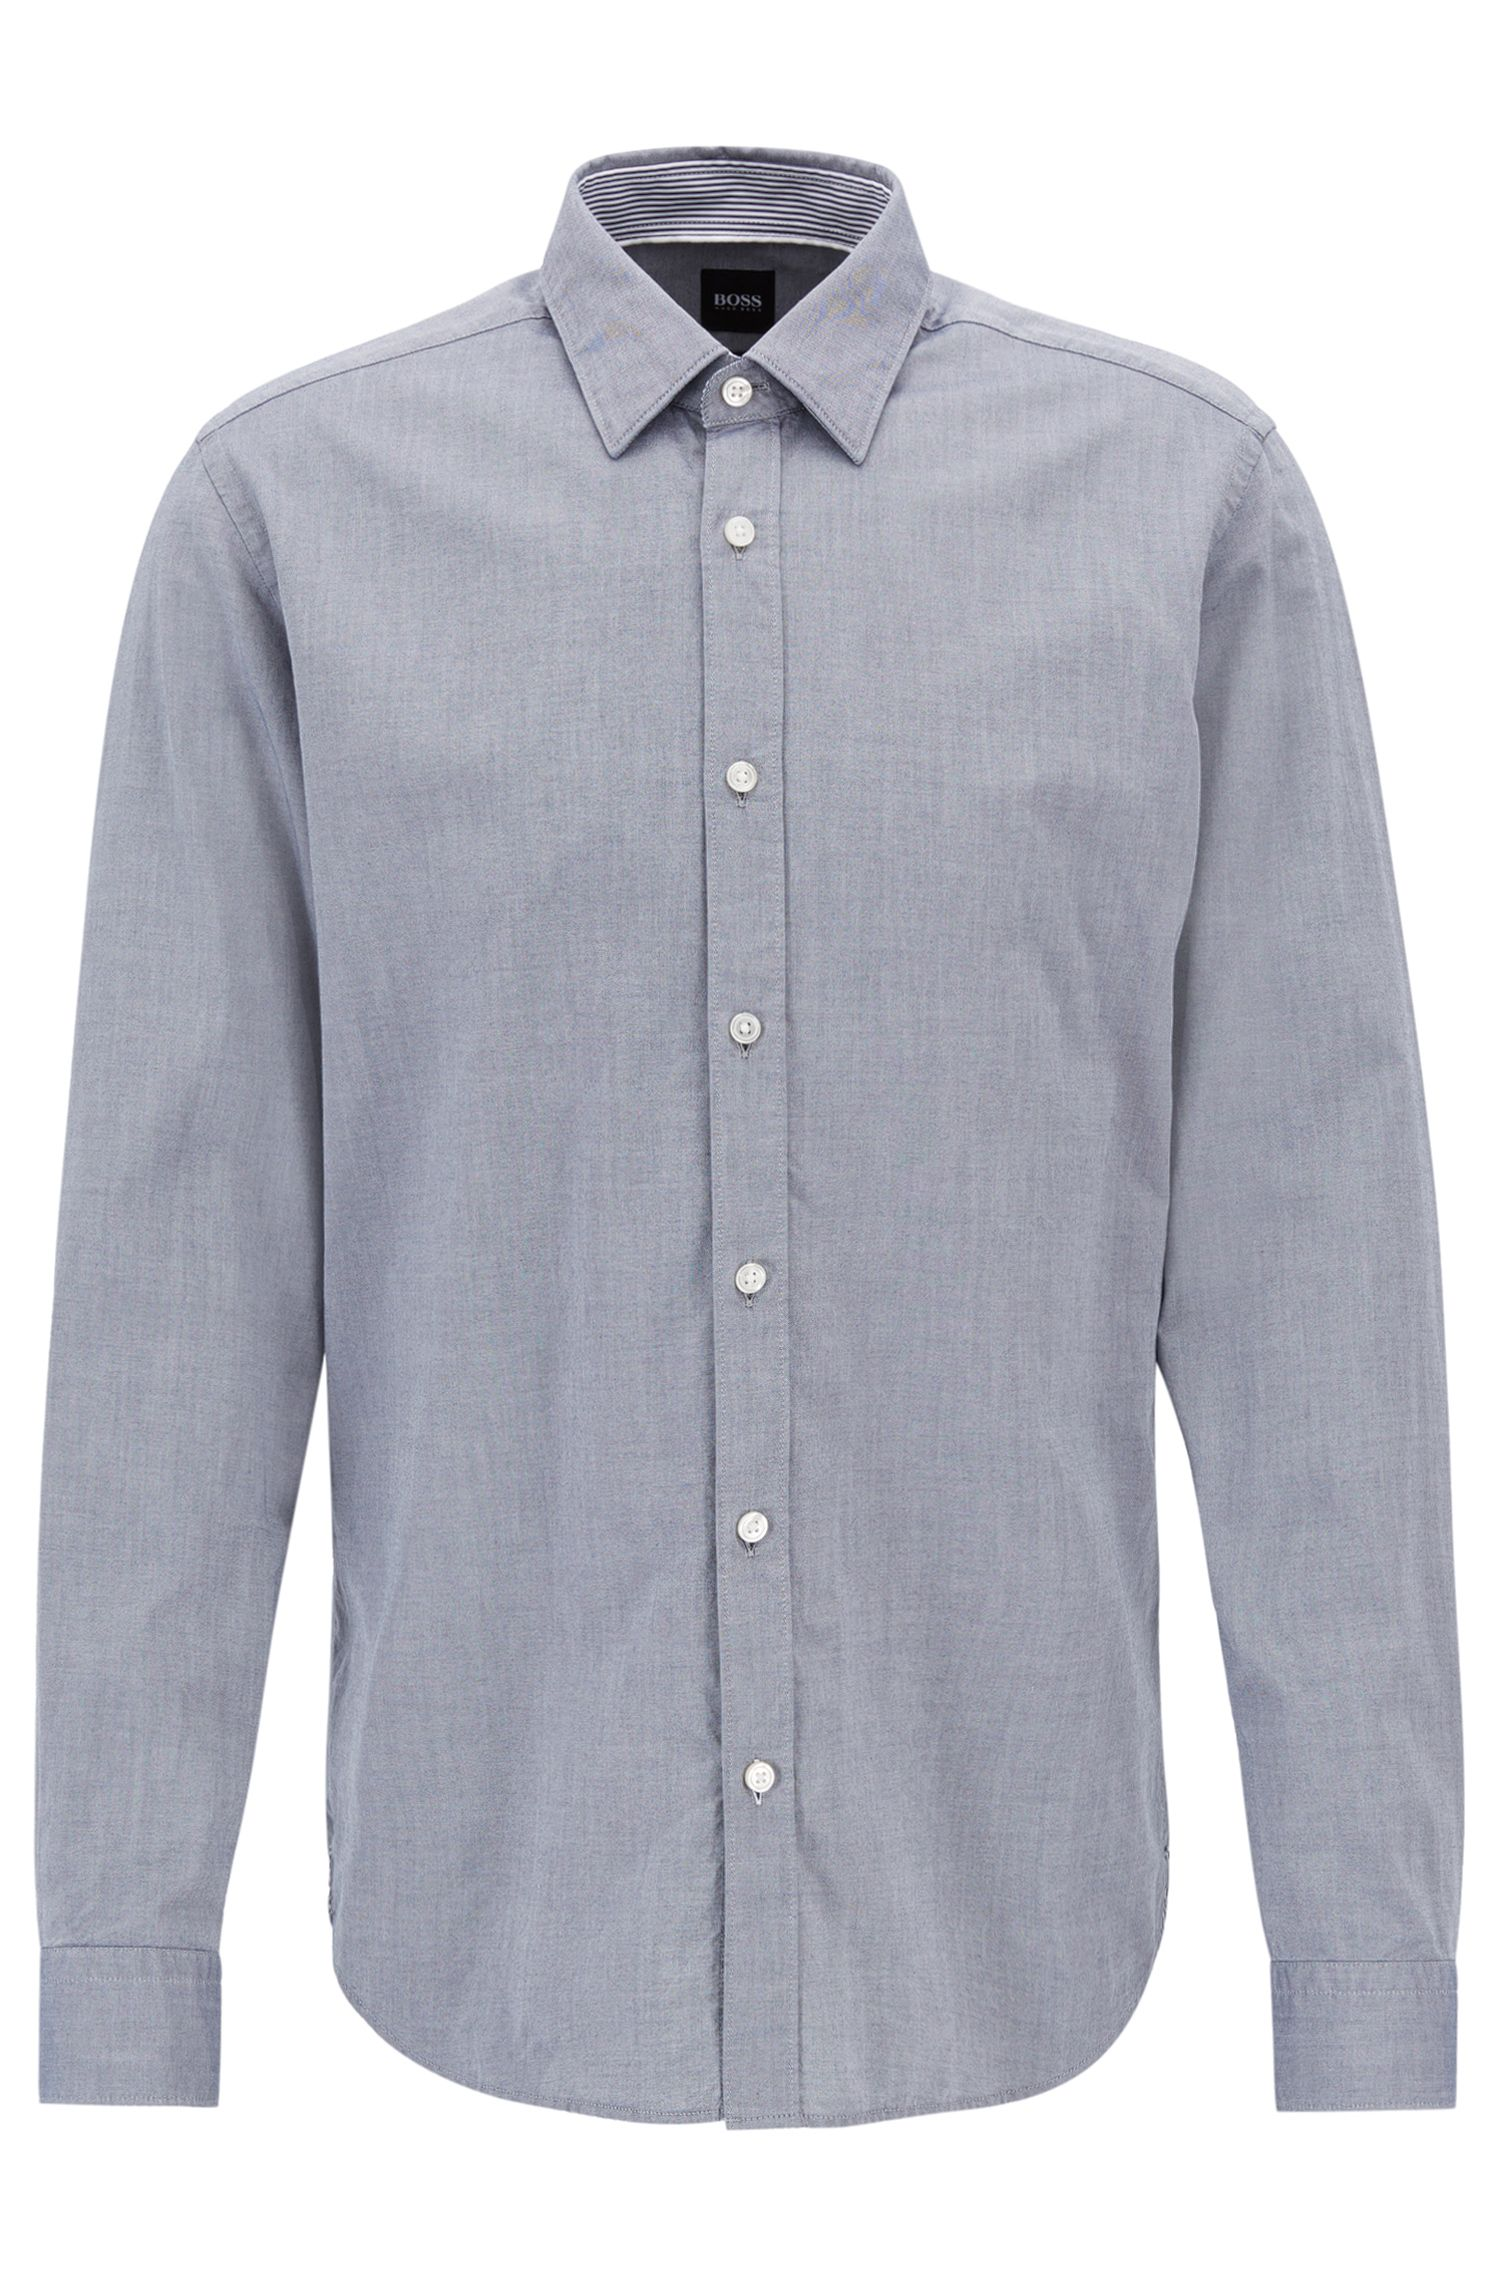 Slim-fit Oxford shirt in mercerised cotton